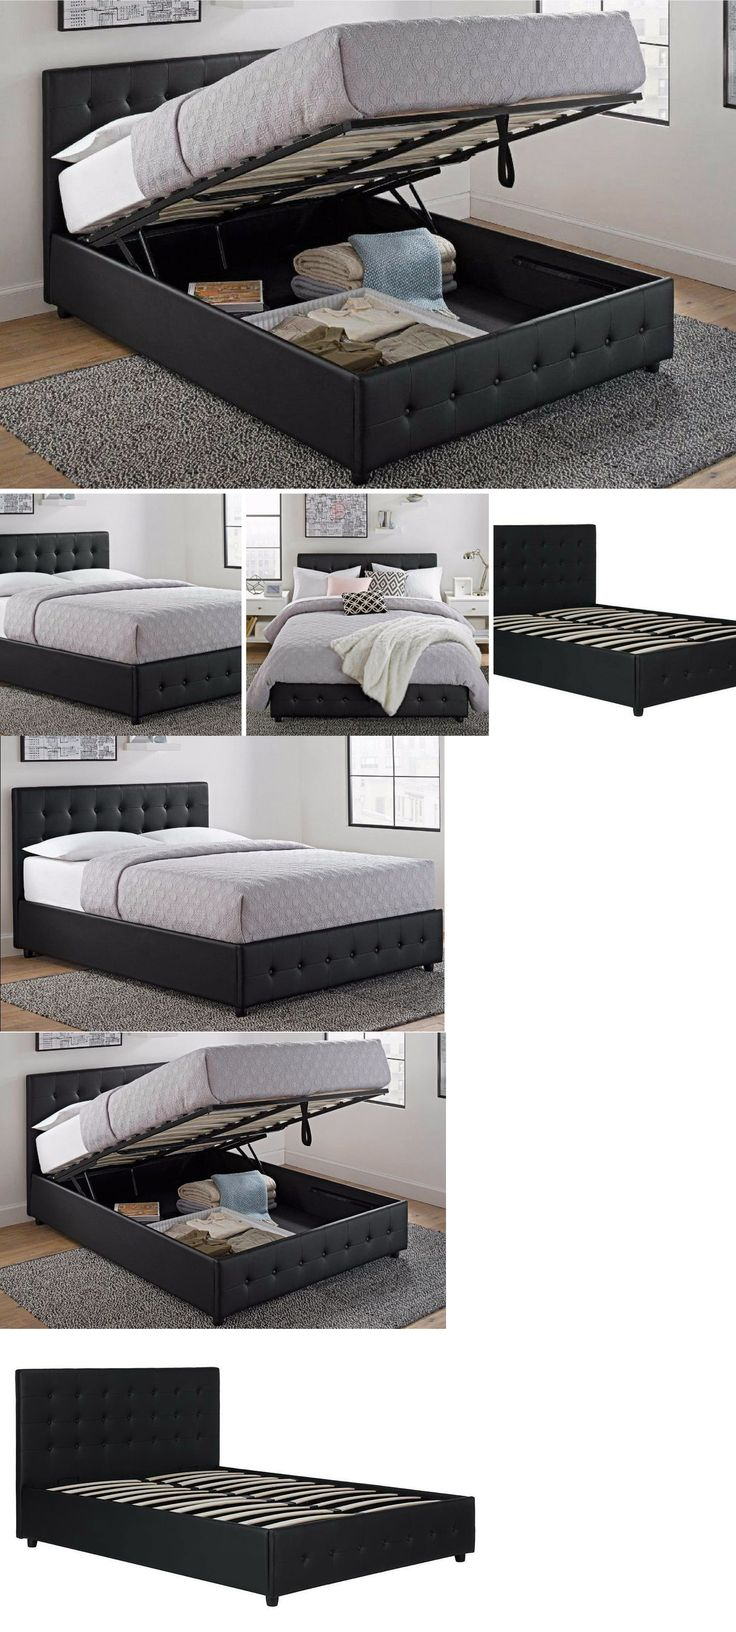 bedding queen size bed frame with shoe storage tufted headboard leather black platform